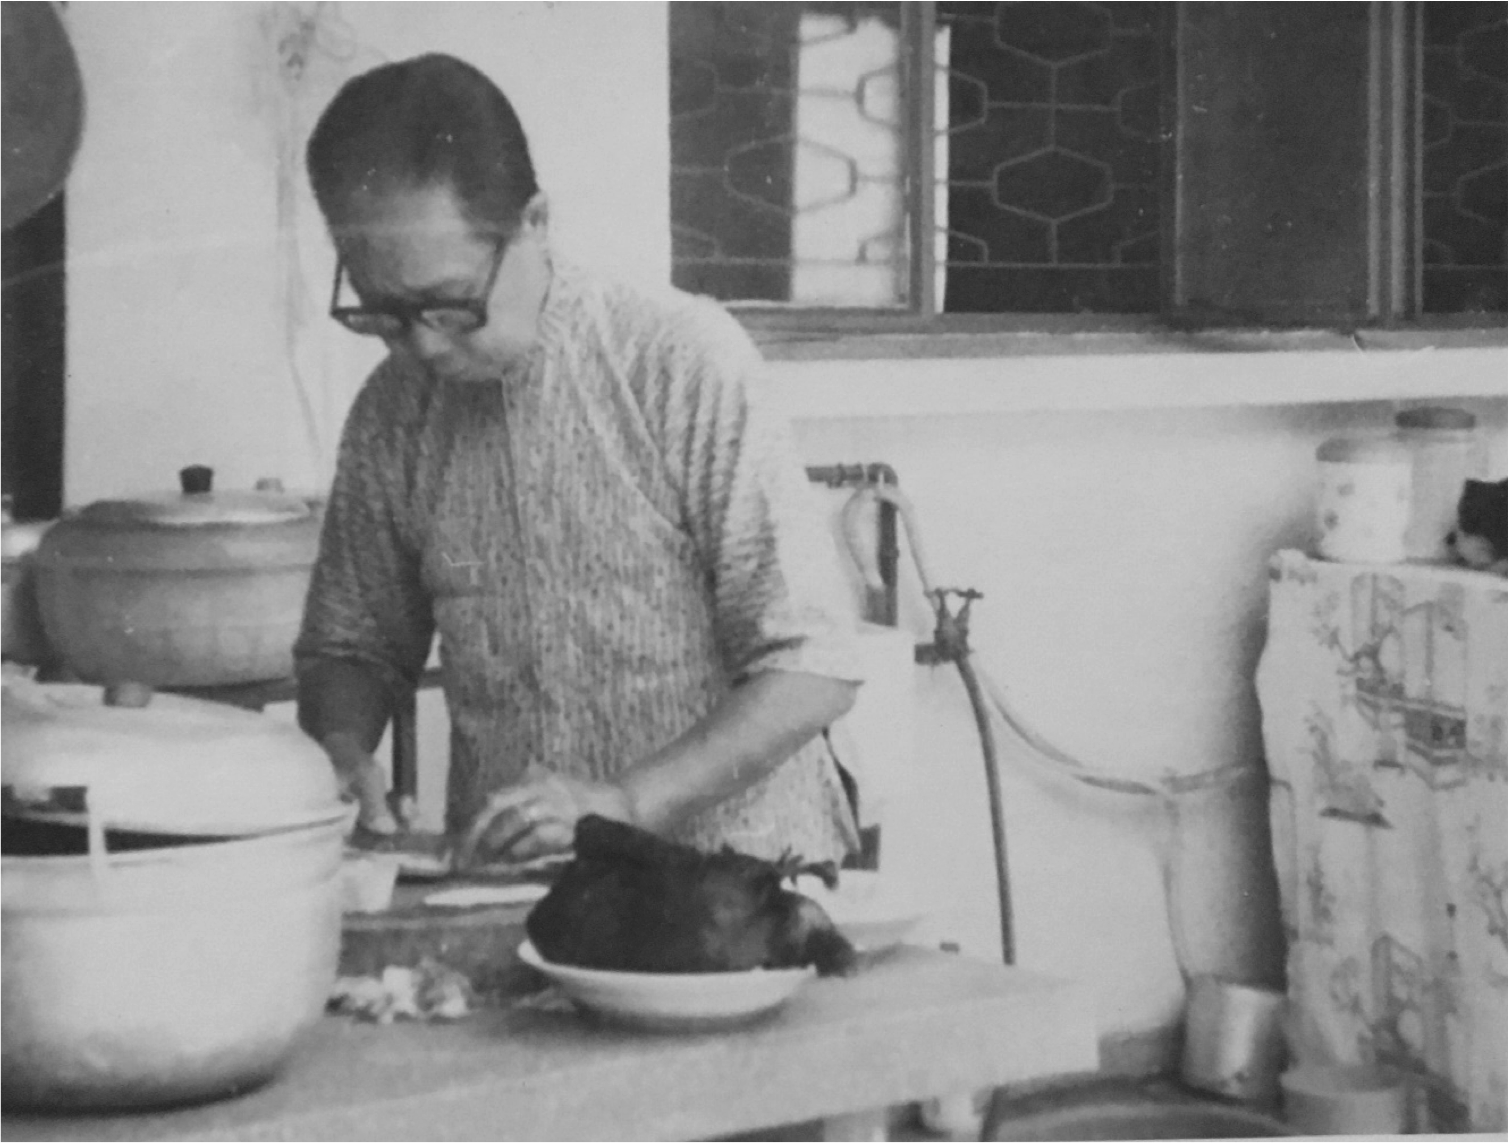 Auyong Foon preparing food in an outdoor kitchen